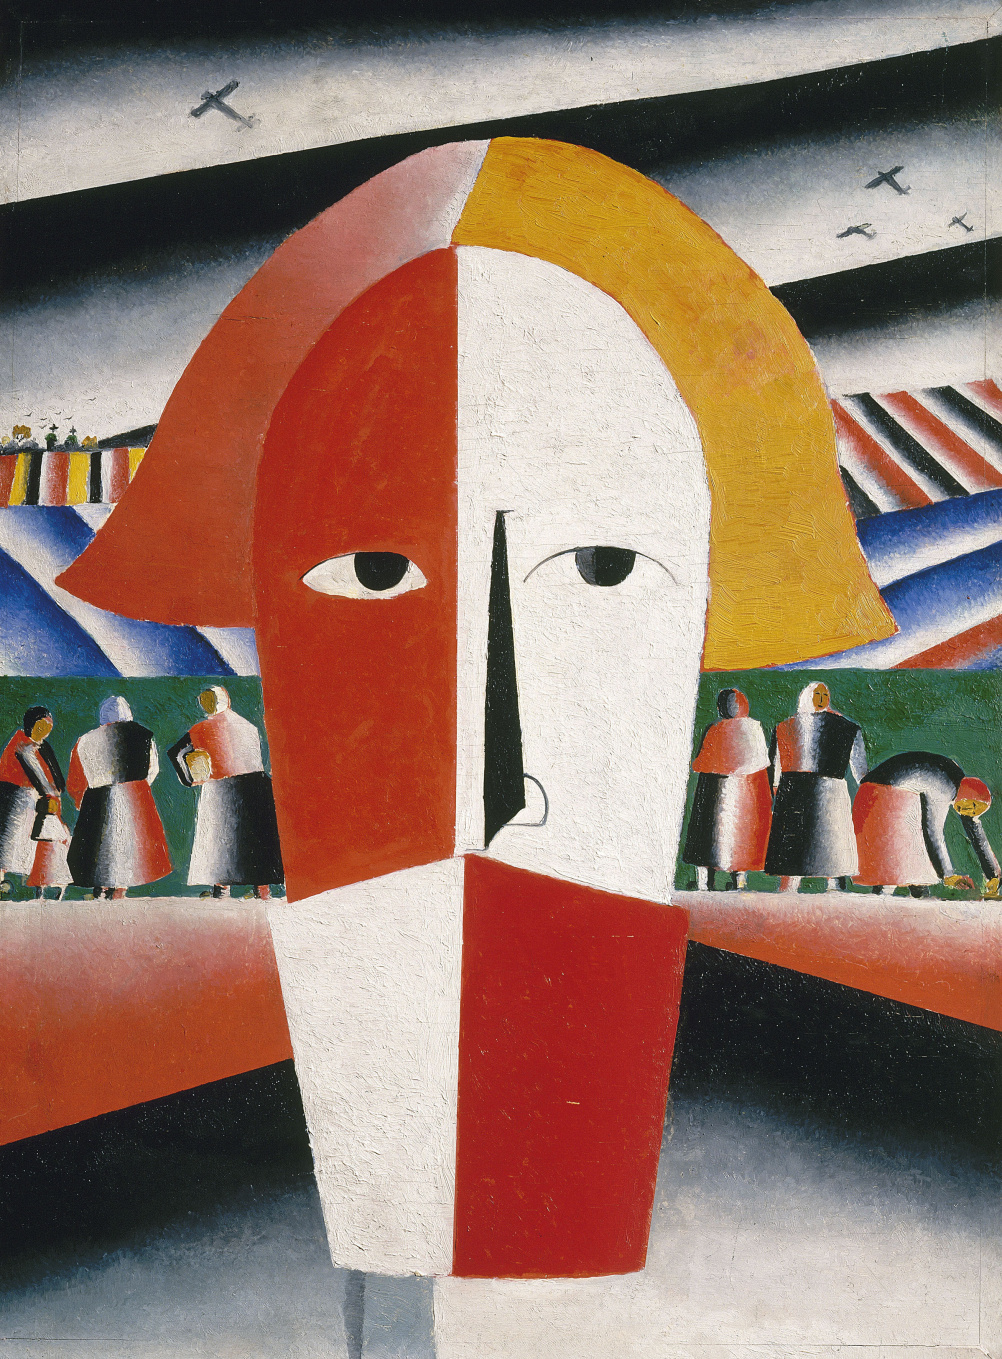 Malevich (1878 - 1935)?Head of a Peasant 1928-29?